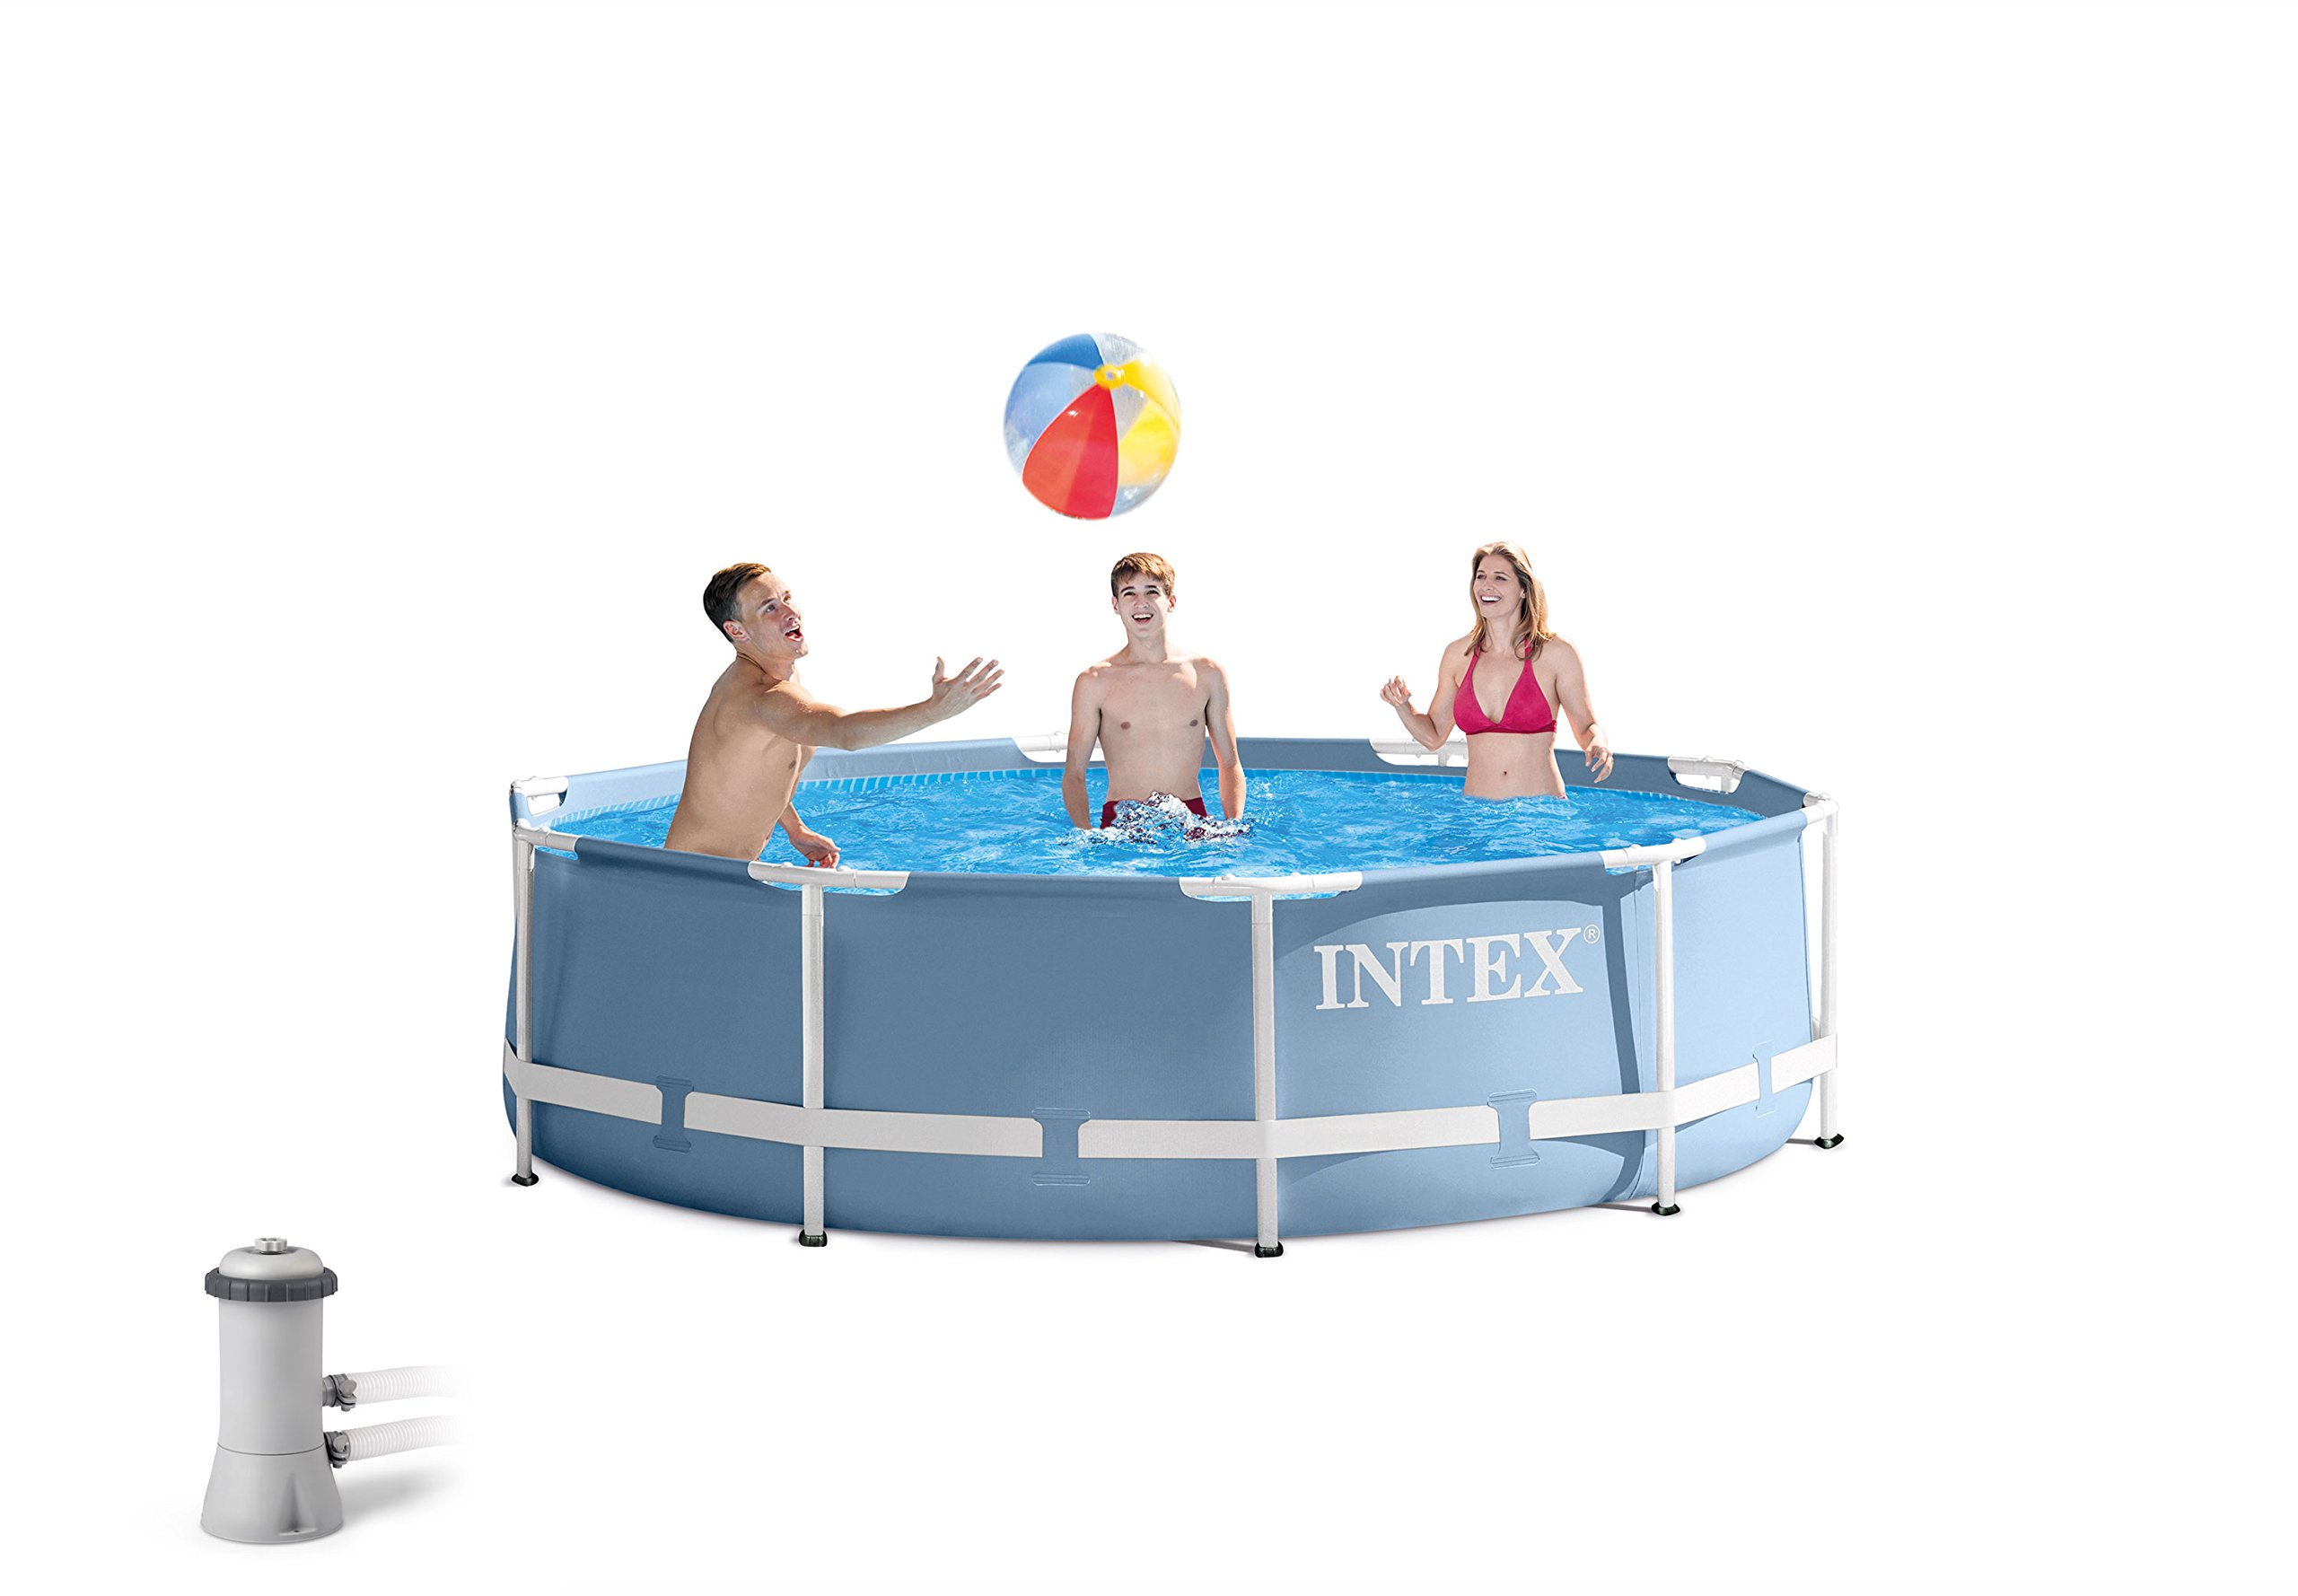 Intex 12ft X 30in Prism Frame Pool Set with Filter Pump by INTEX (Image #1)